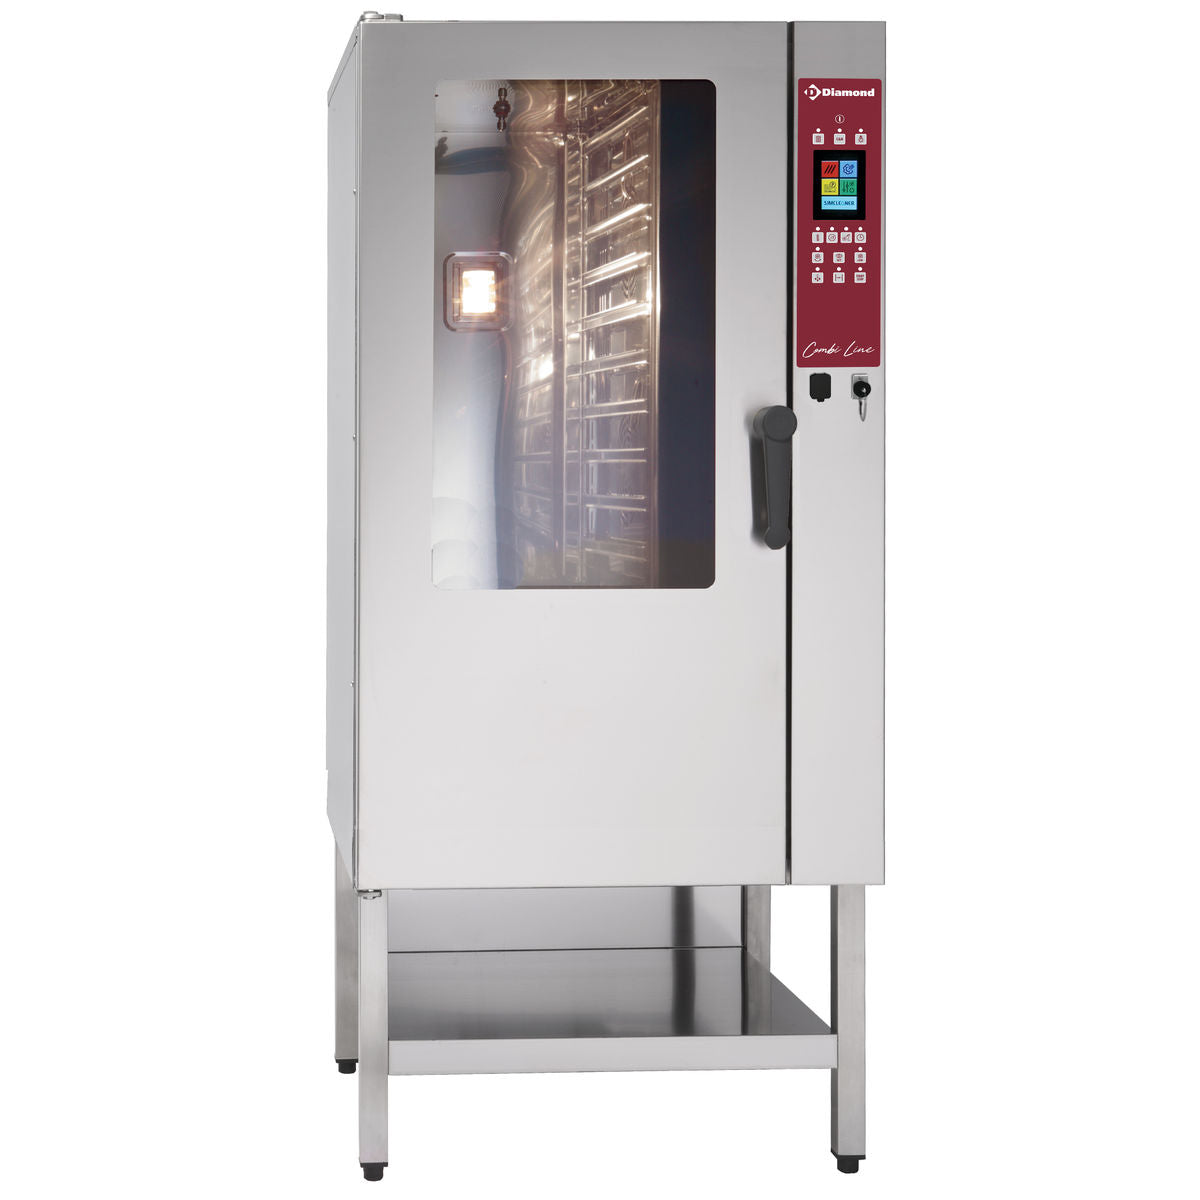 Combisteamer - Konvektion og damp 15 GN 1/1 touch screen / auto clean